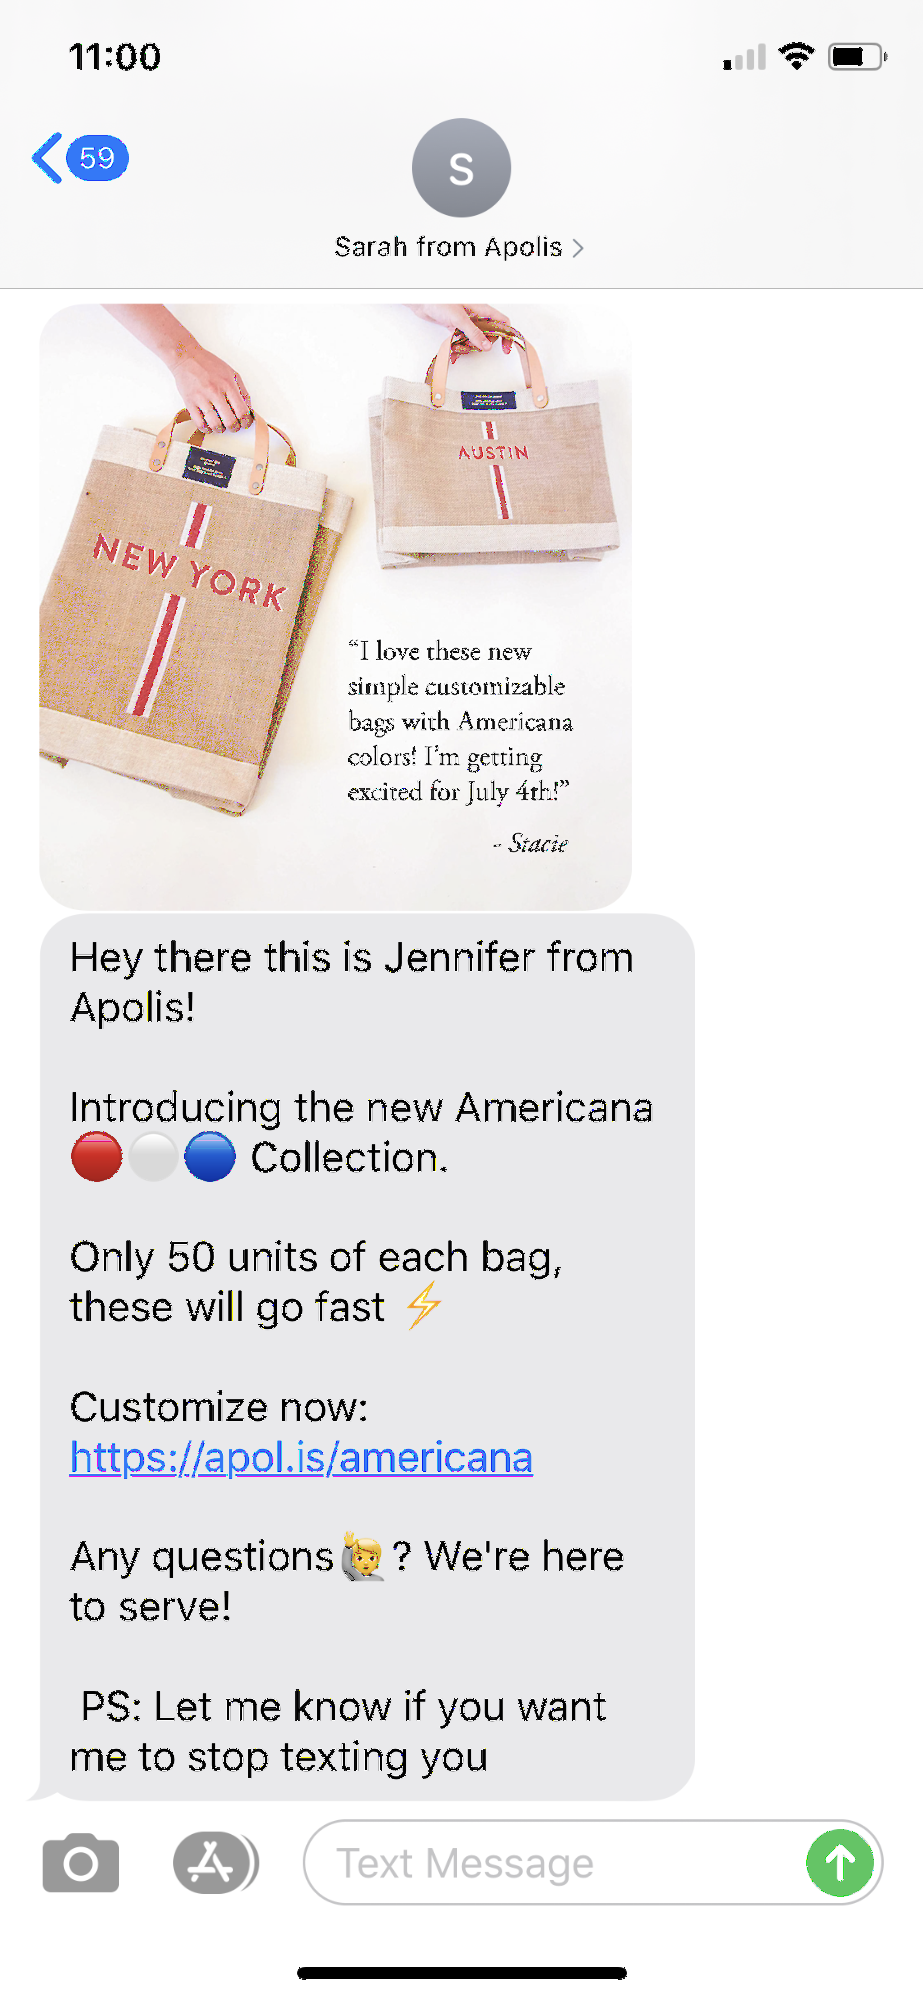 A follow-up text from a brand after someone purchases